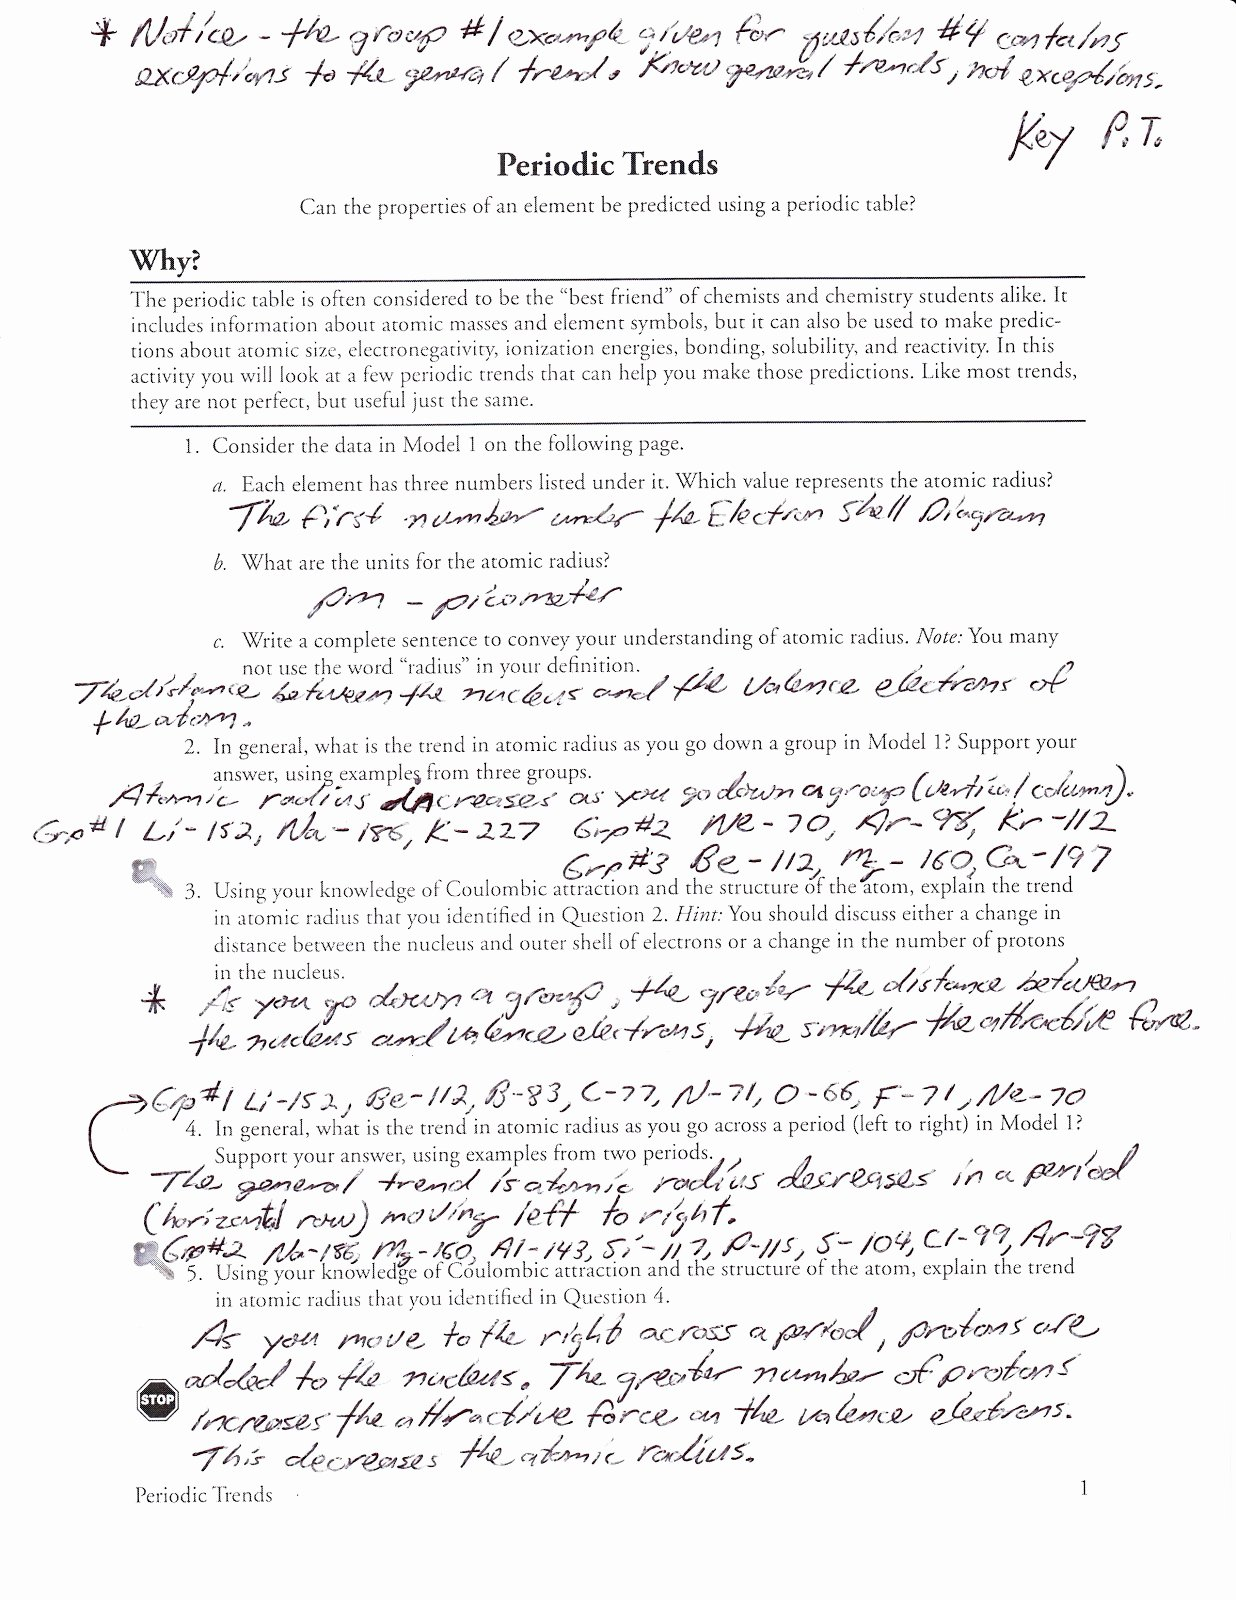 Worksheet Periodic Trends Answer Key The Best Worksheets Image